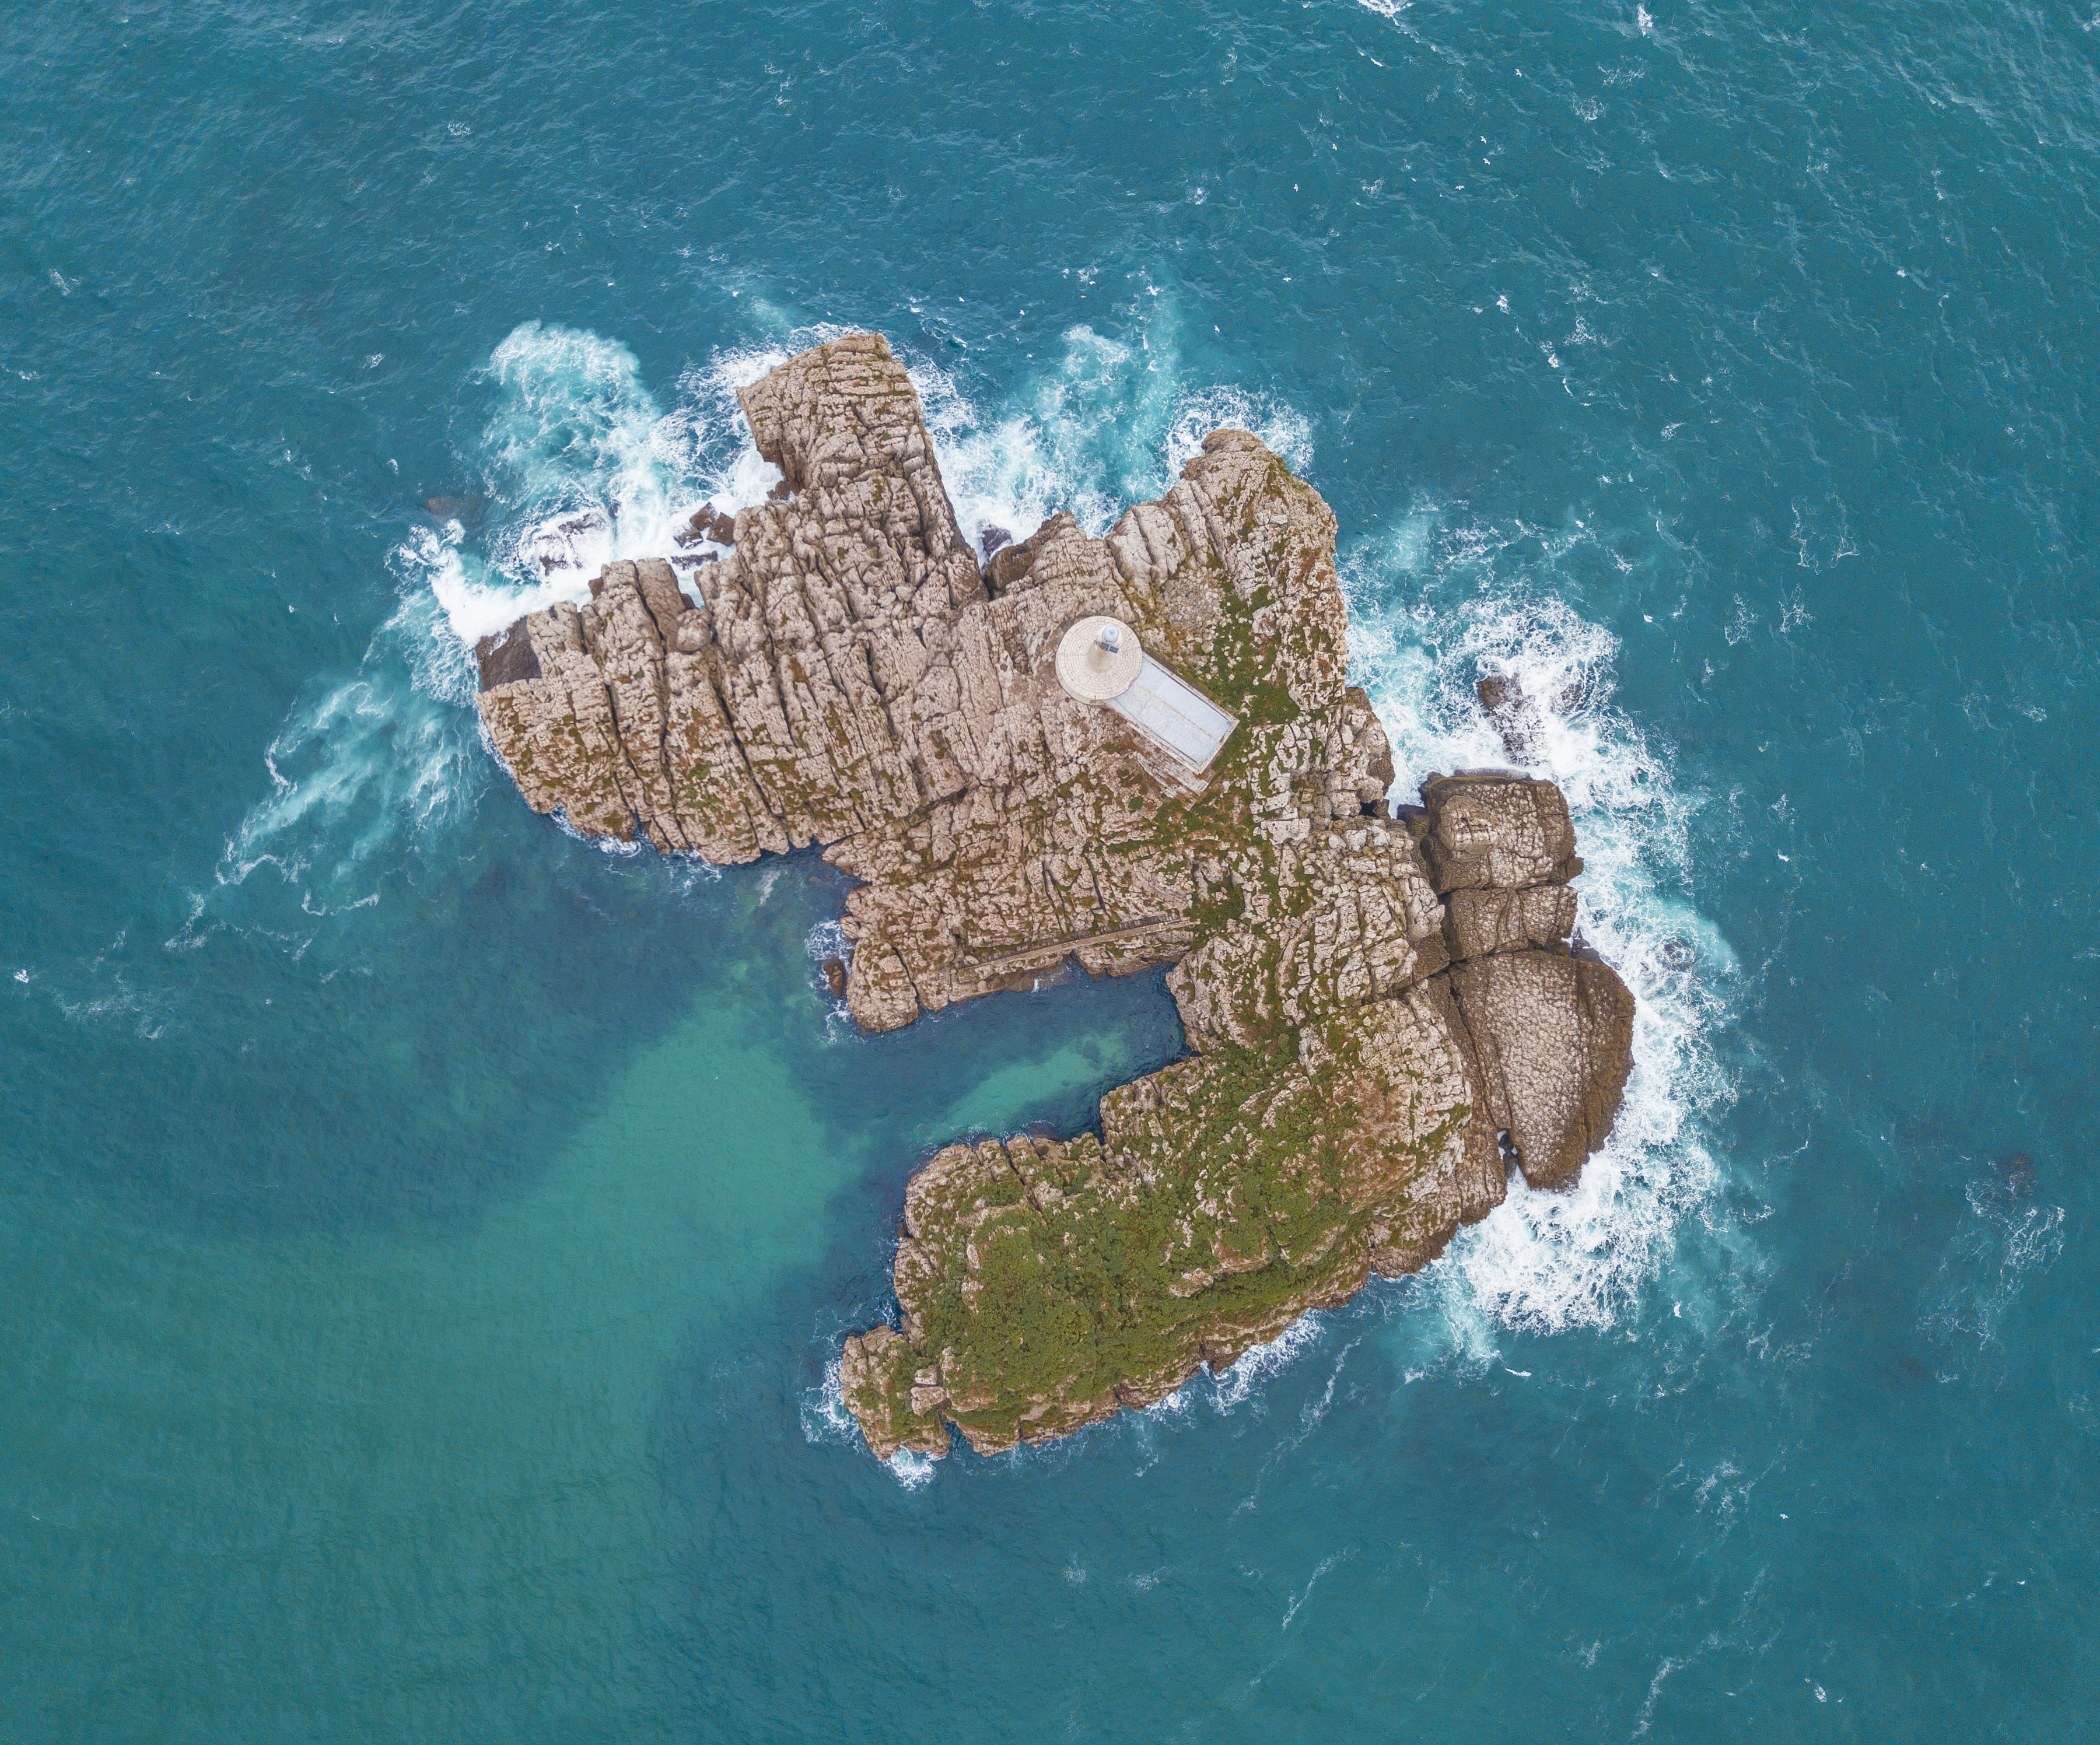 aerial photography of brown island surrounded by body of water at daytime